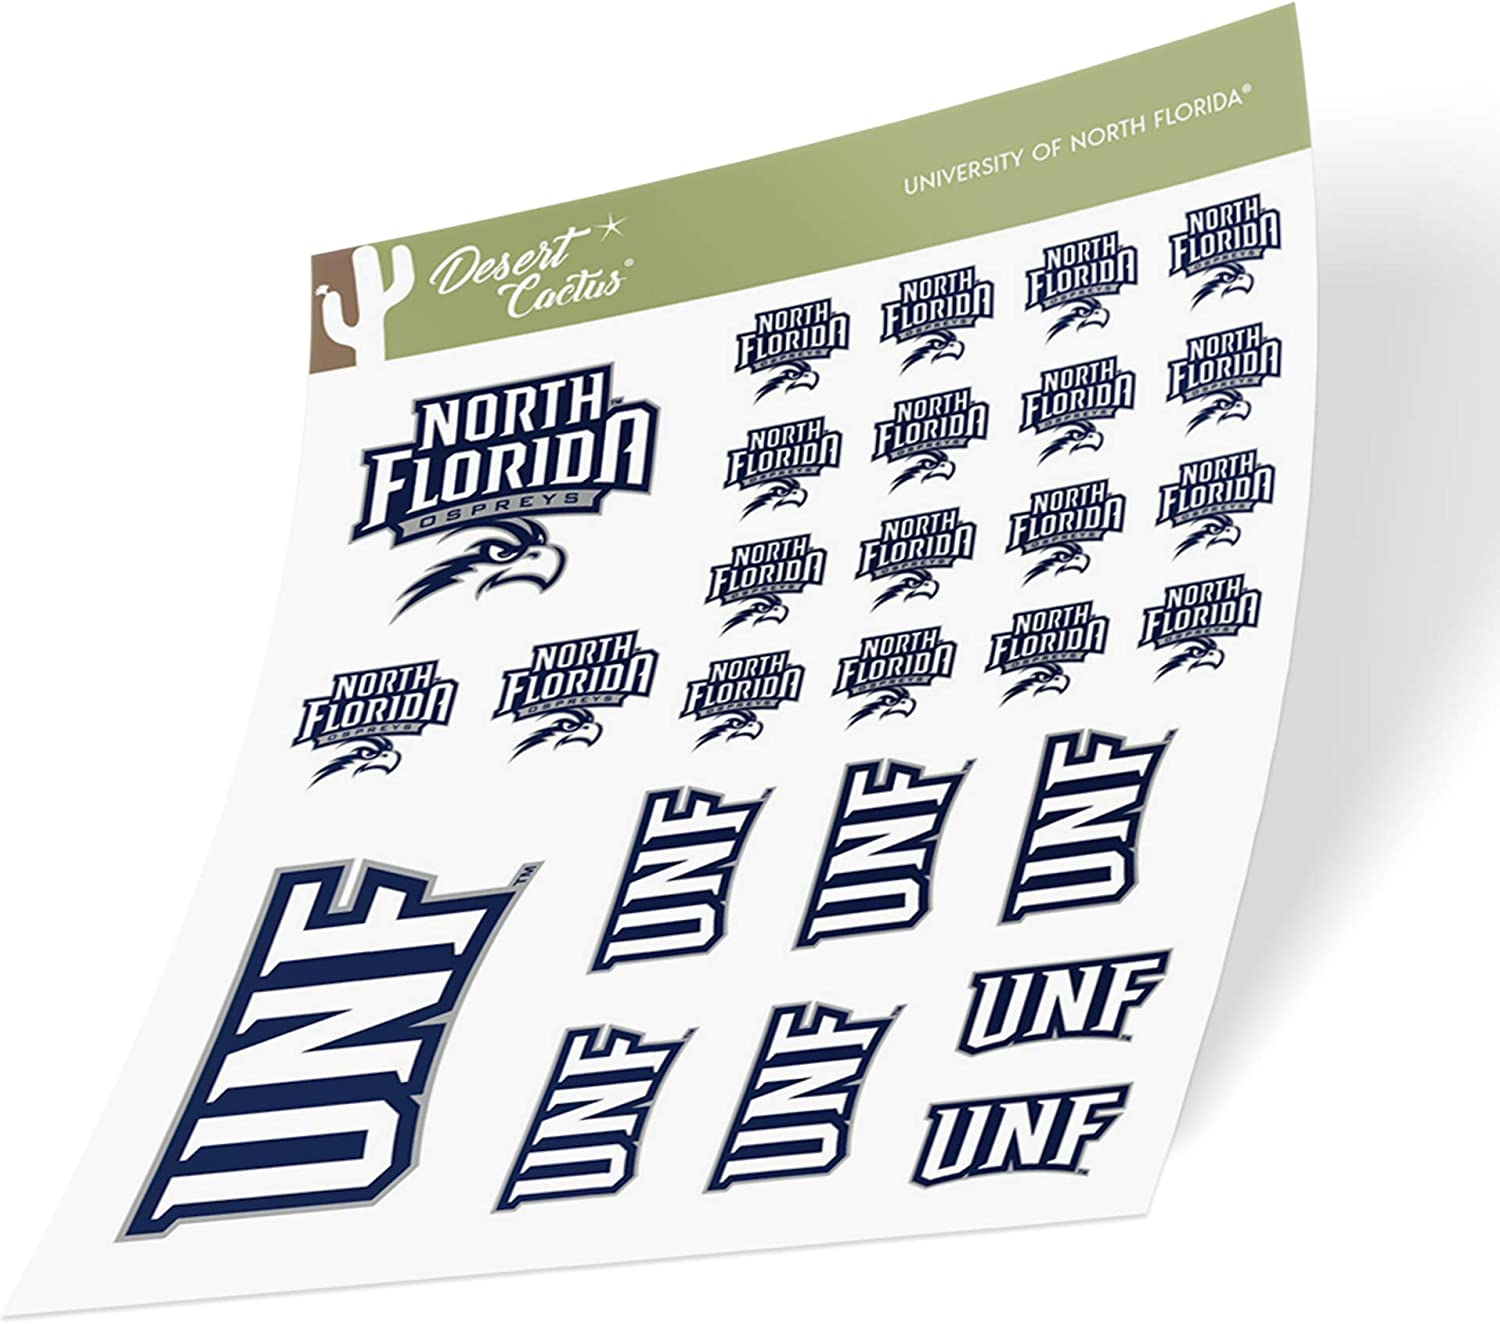 University of North Florida UNF Ospreys NCAA Sticker Vinyl Decal Laptop Water Bottle Car Scrapbook (Type 1-1 Sheet)